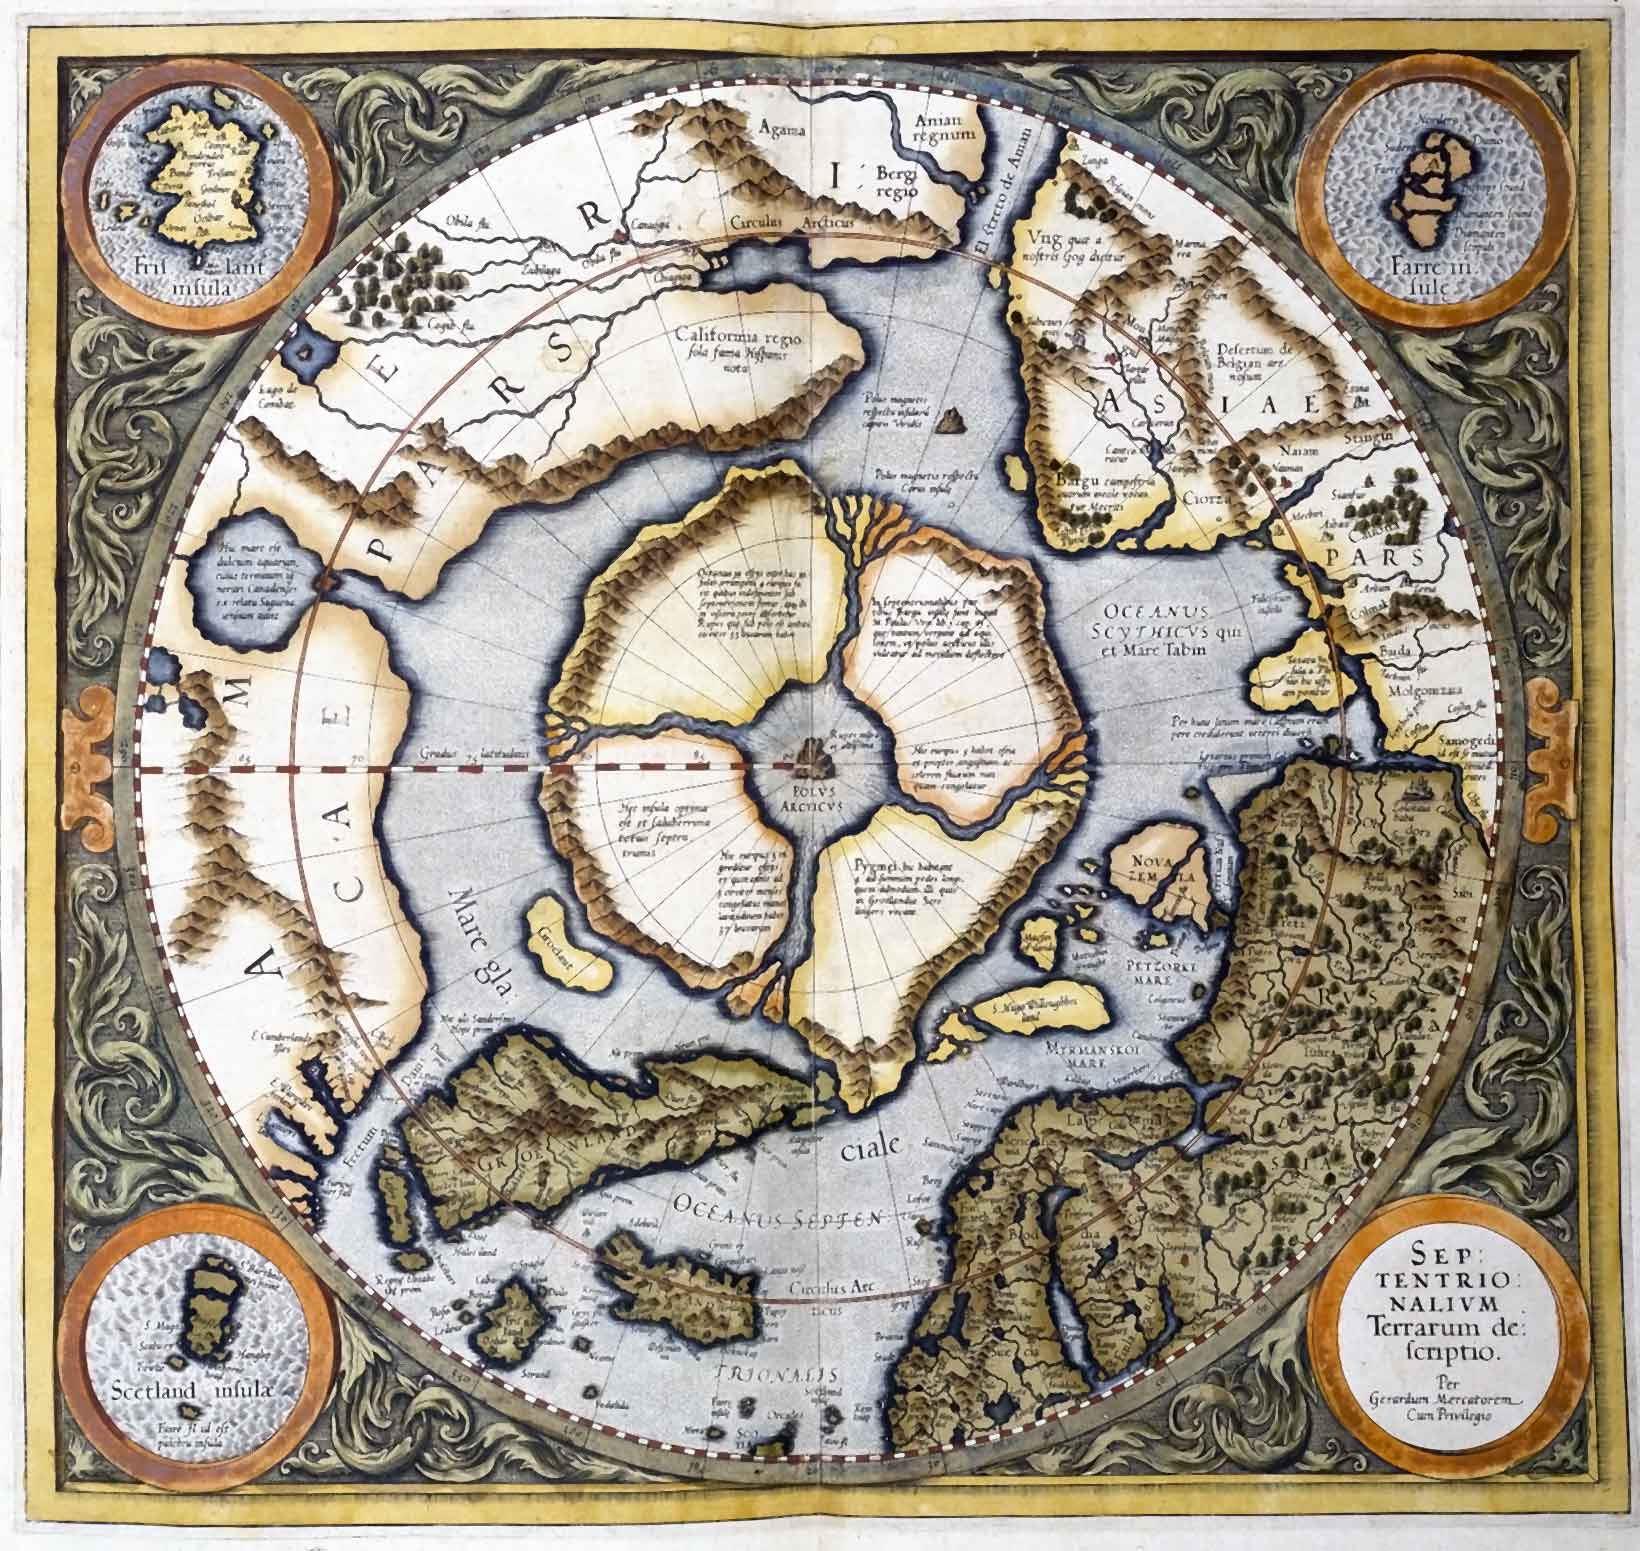 Mercator map of 1595